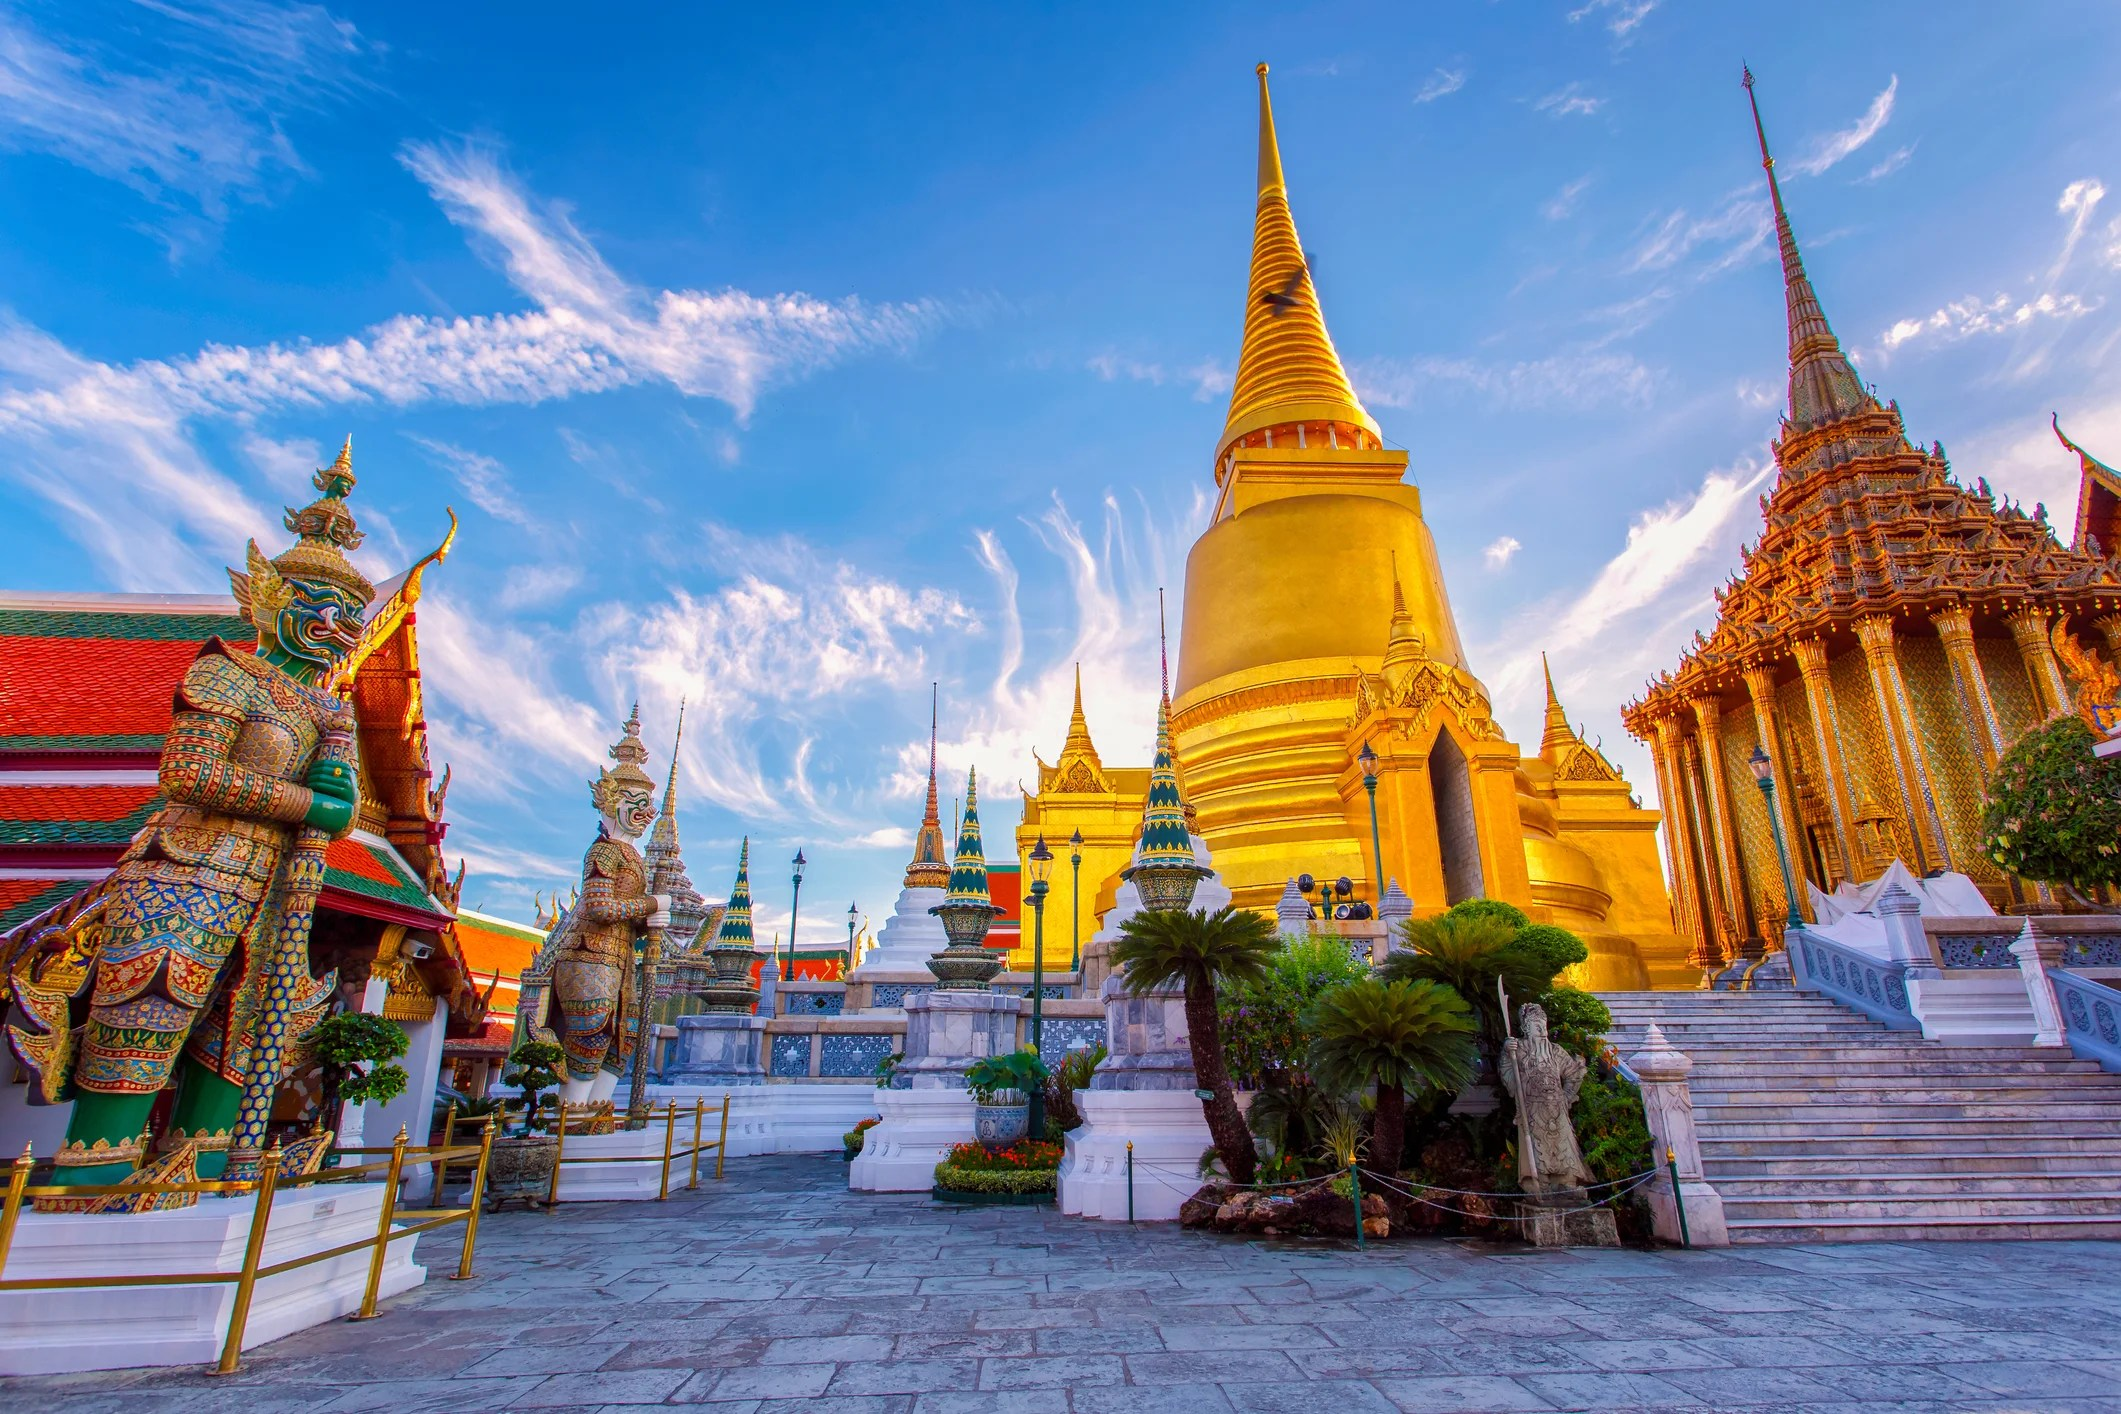 Deal Alert: US Cities to Bangkok on Full-Service Carriers From $442 Round-Trip